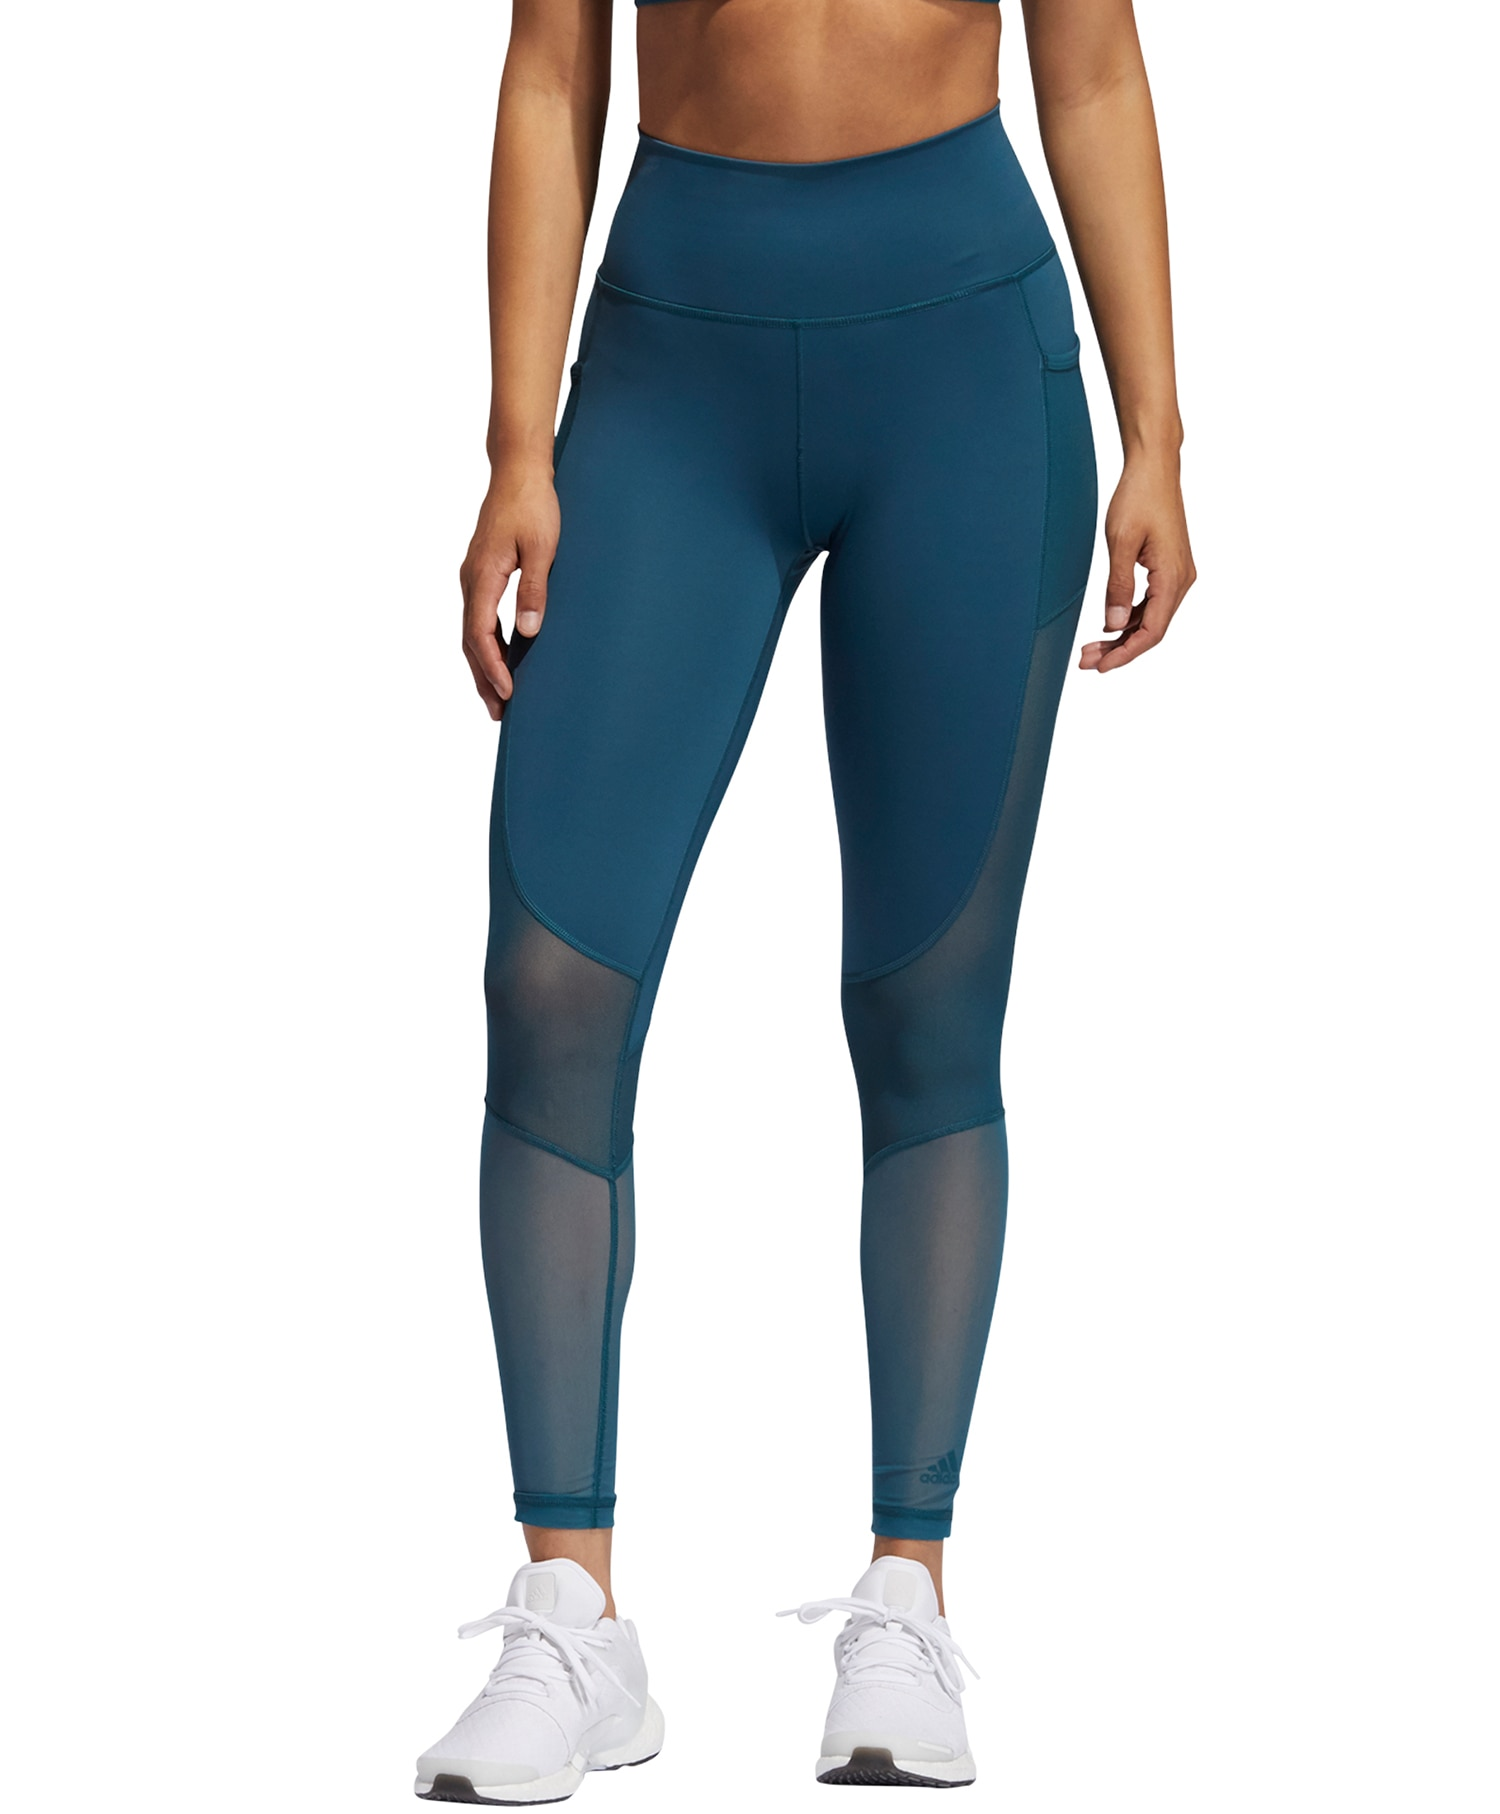 Adidas GLO595 Tights